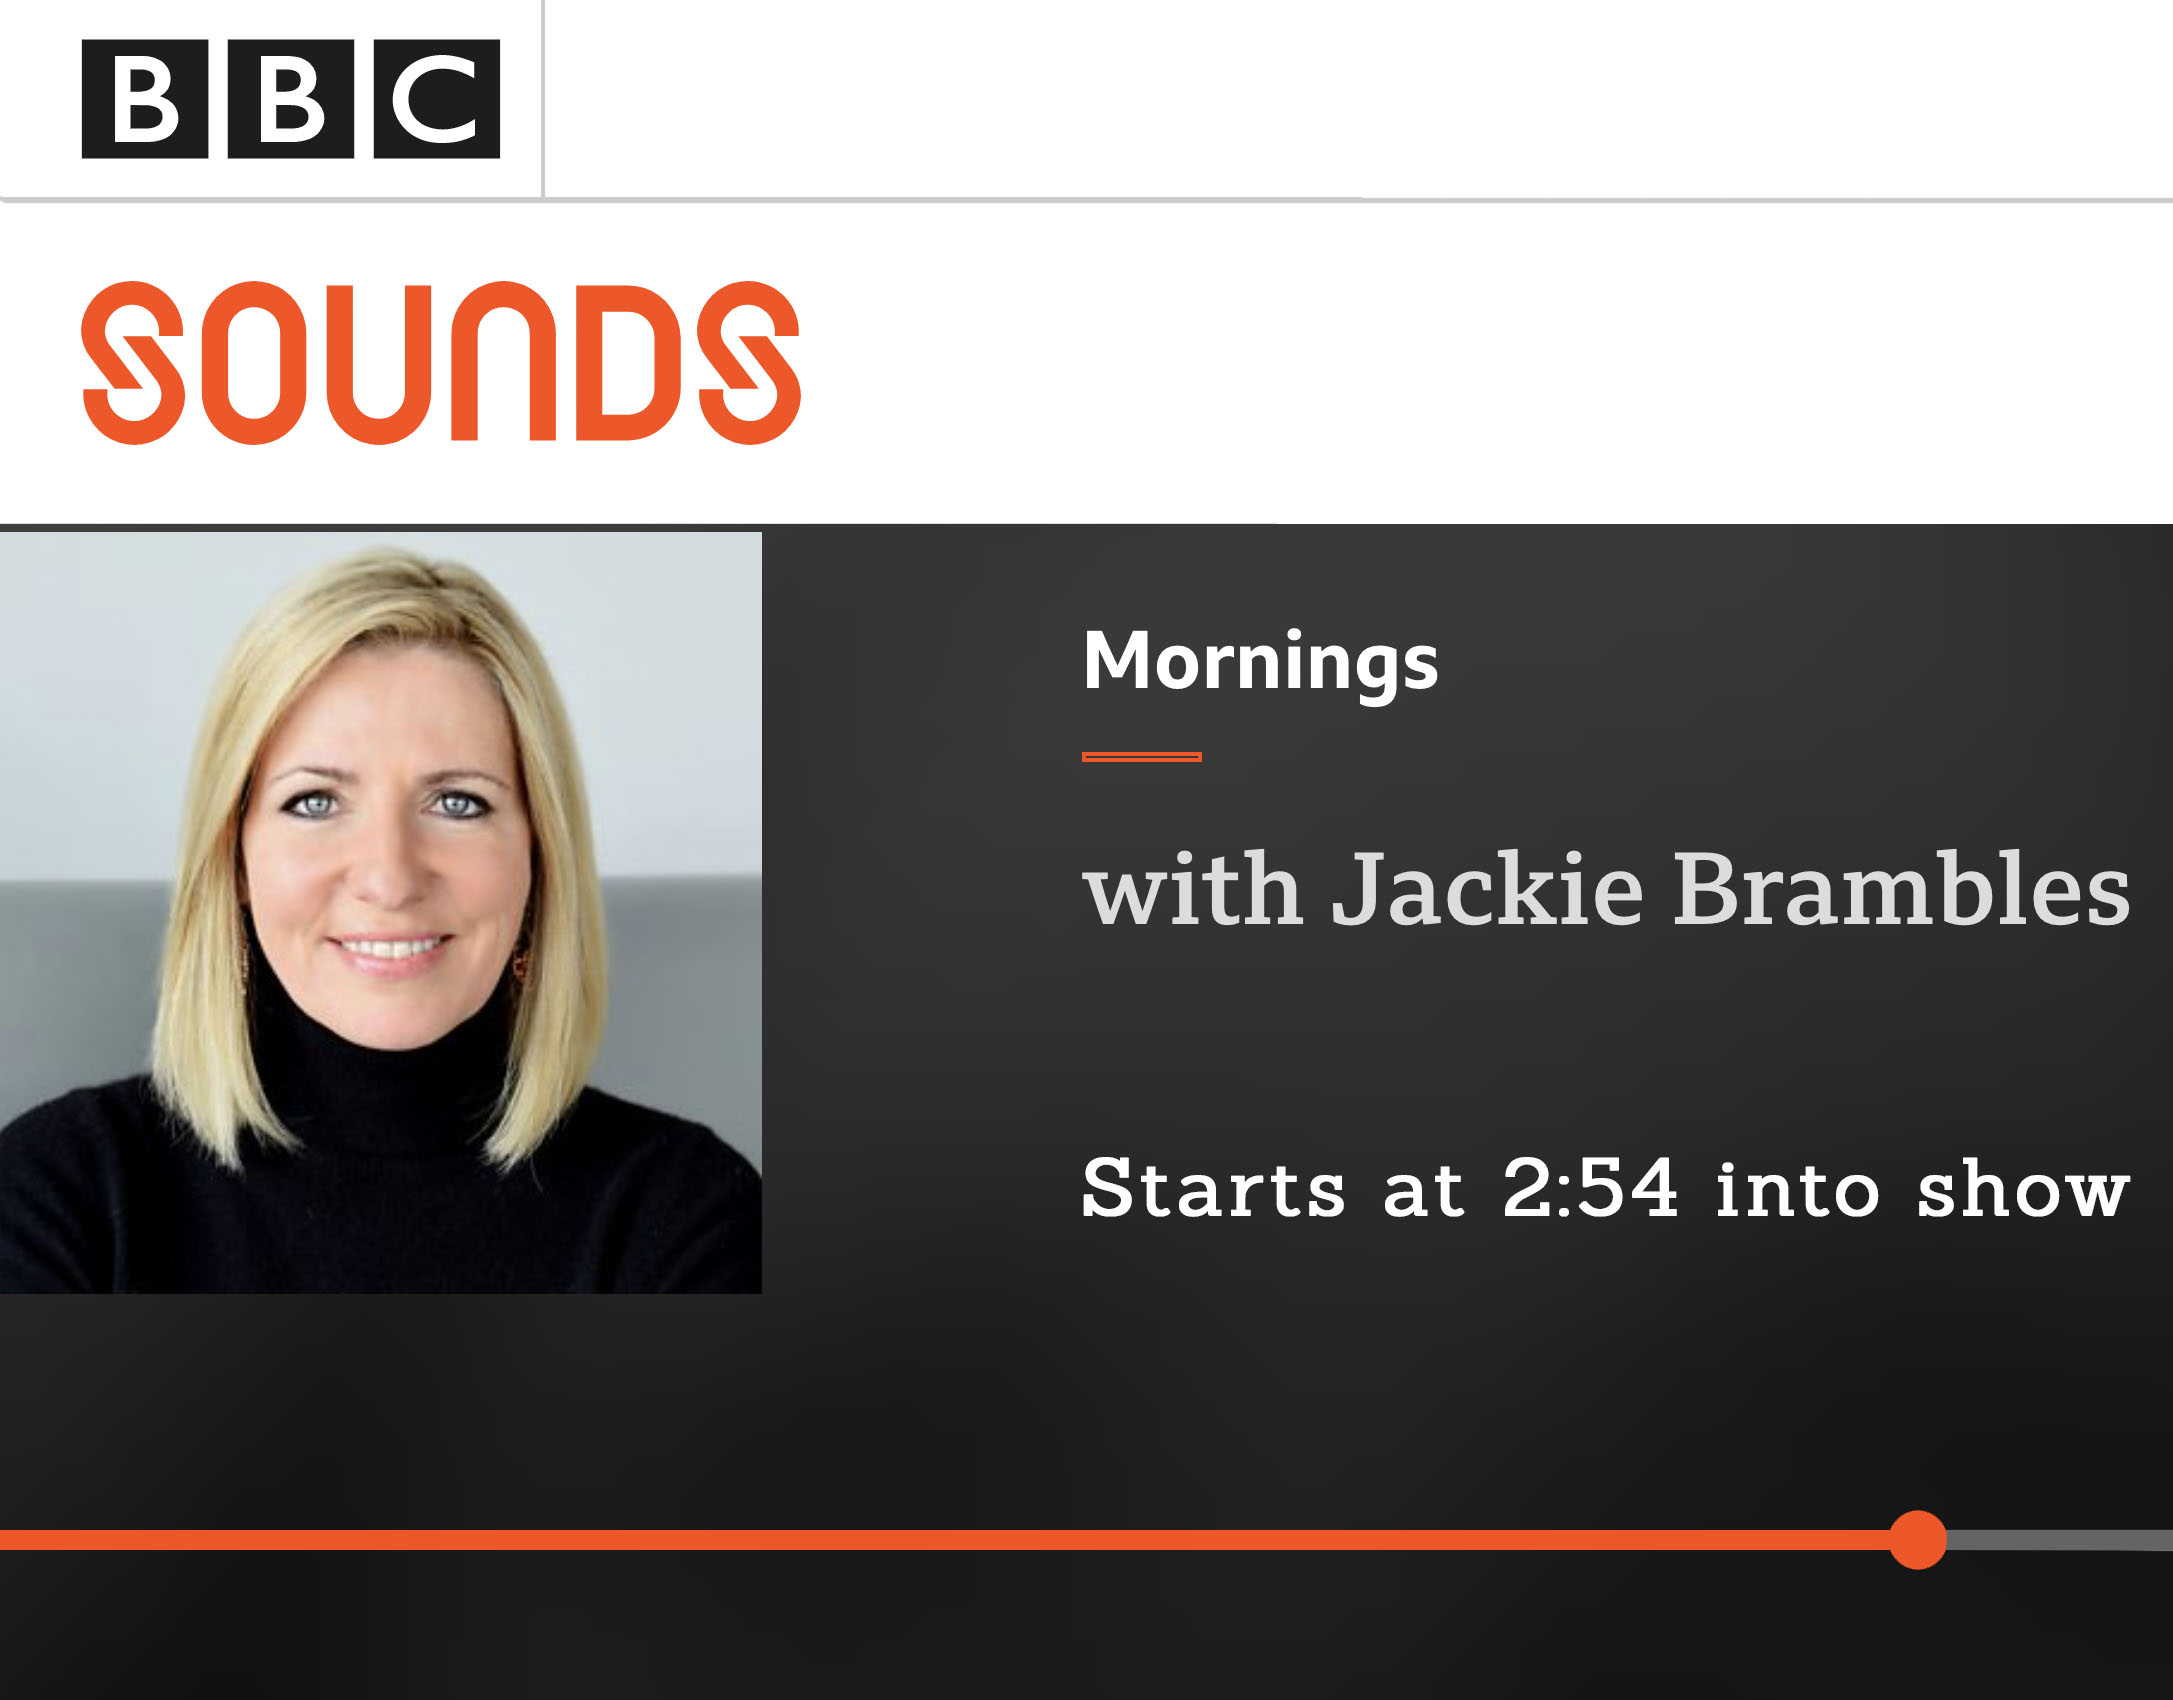 BBC Sounds Morning with Jackie Brambles